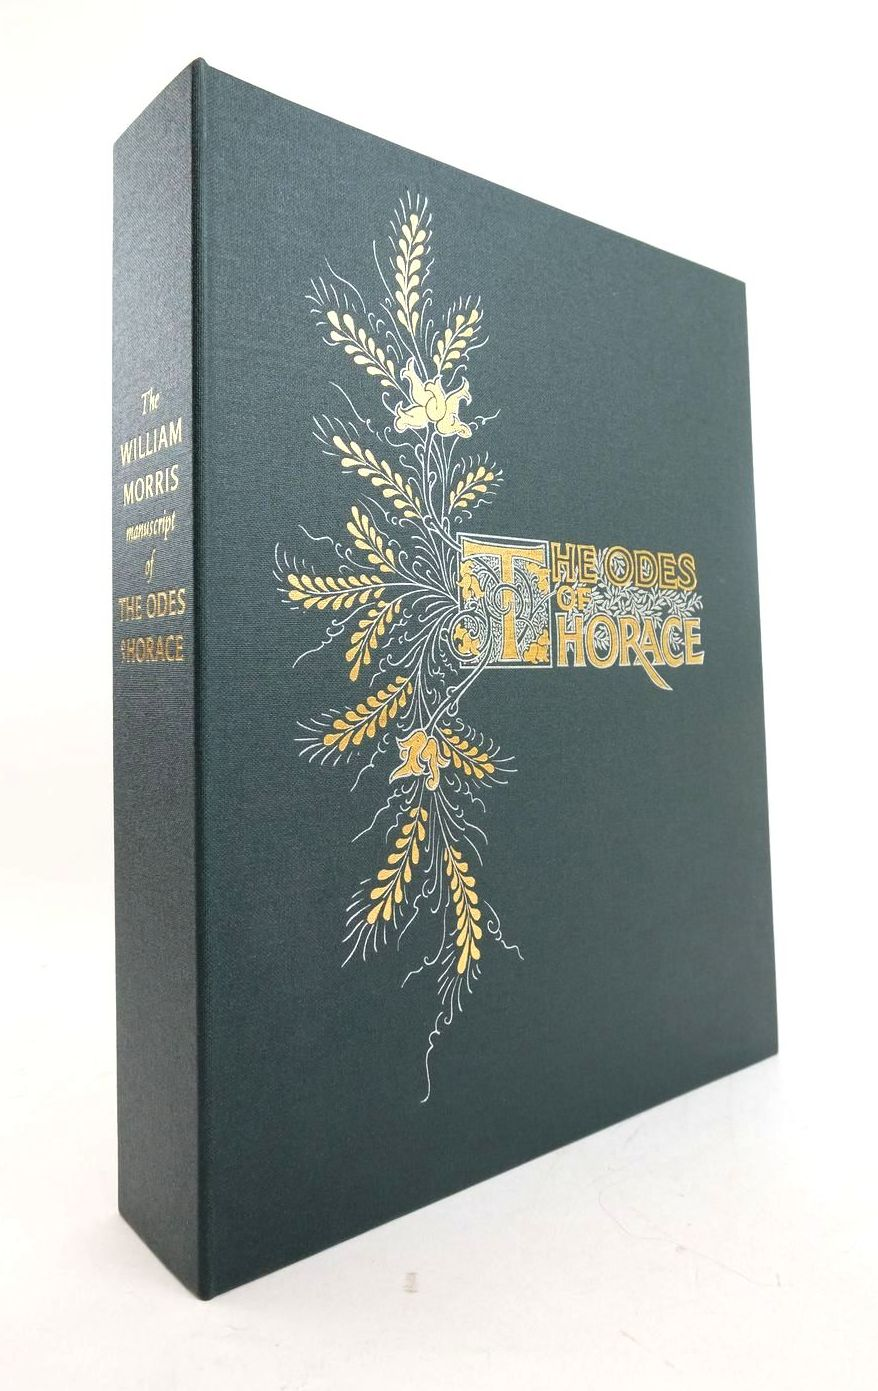 Photo of THE WILLIAM MORRIS MANUSCRIPT OF THE ODES OF HORACE written by Horace, Wilmer, Clive illustrated by Frink, Elisabeth published by Folio Society (STOCK CODE: 1821906)  for sale by Stella & Rose's Books